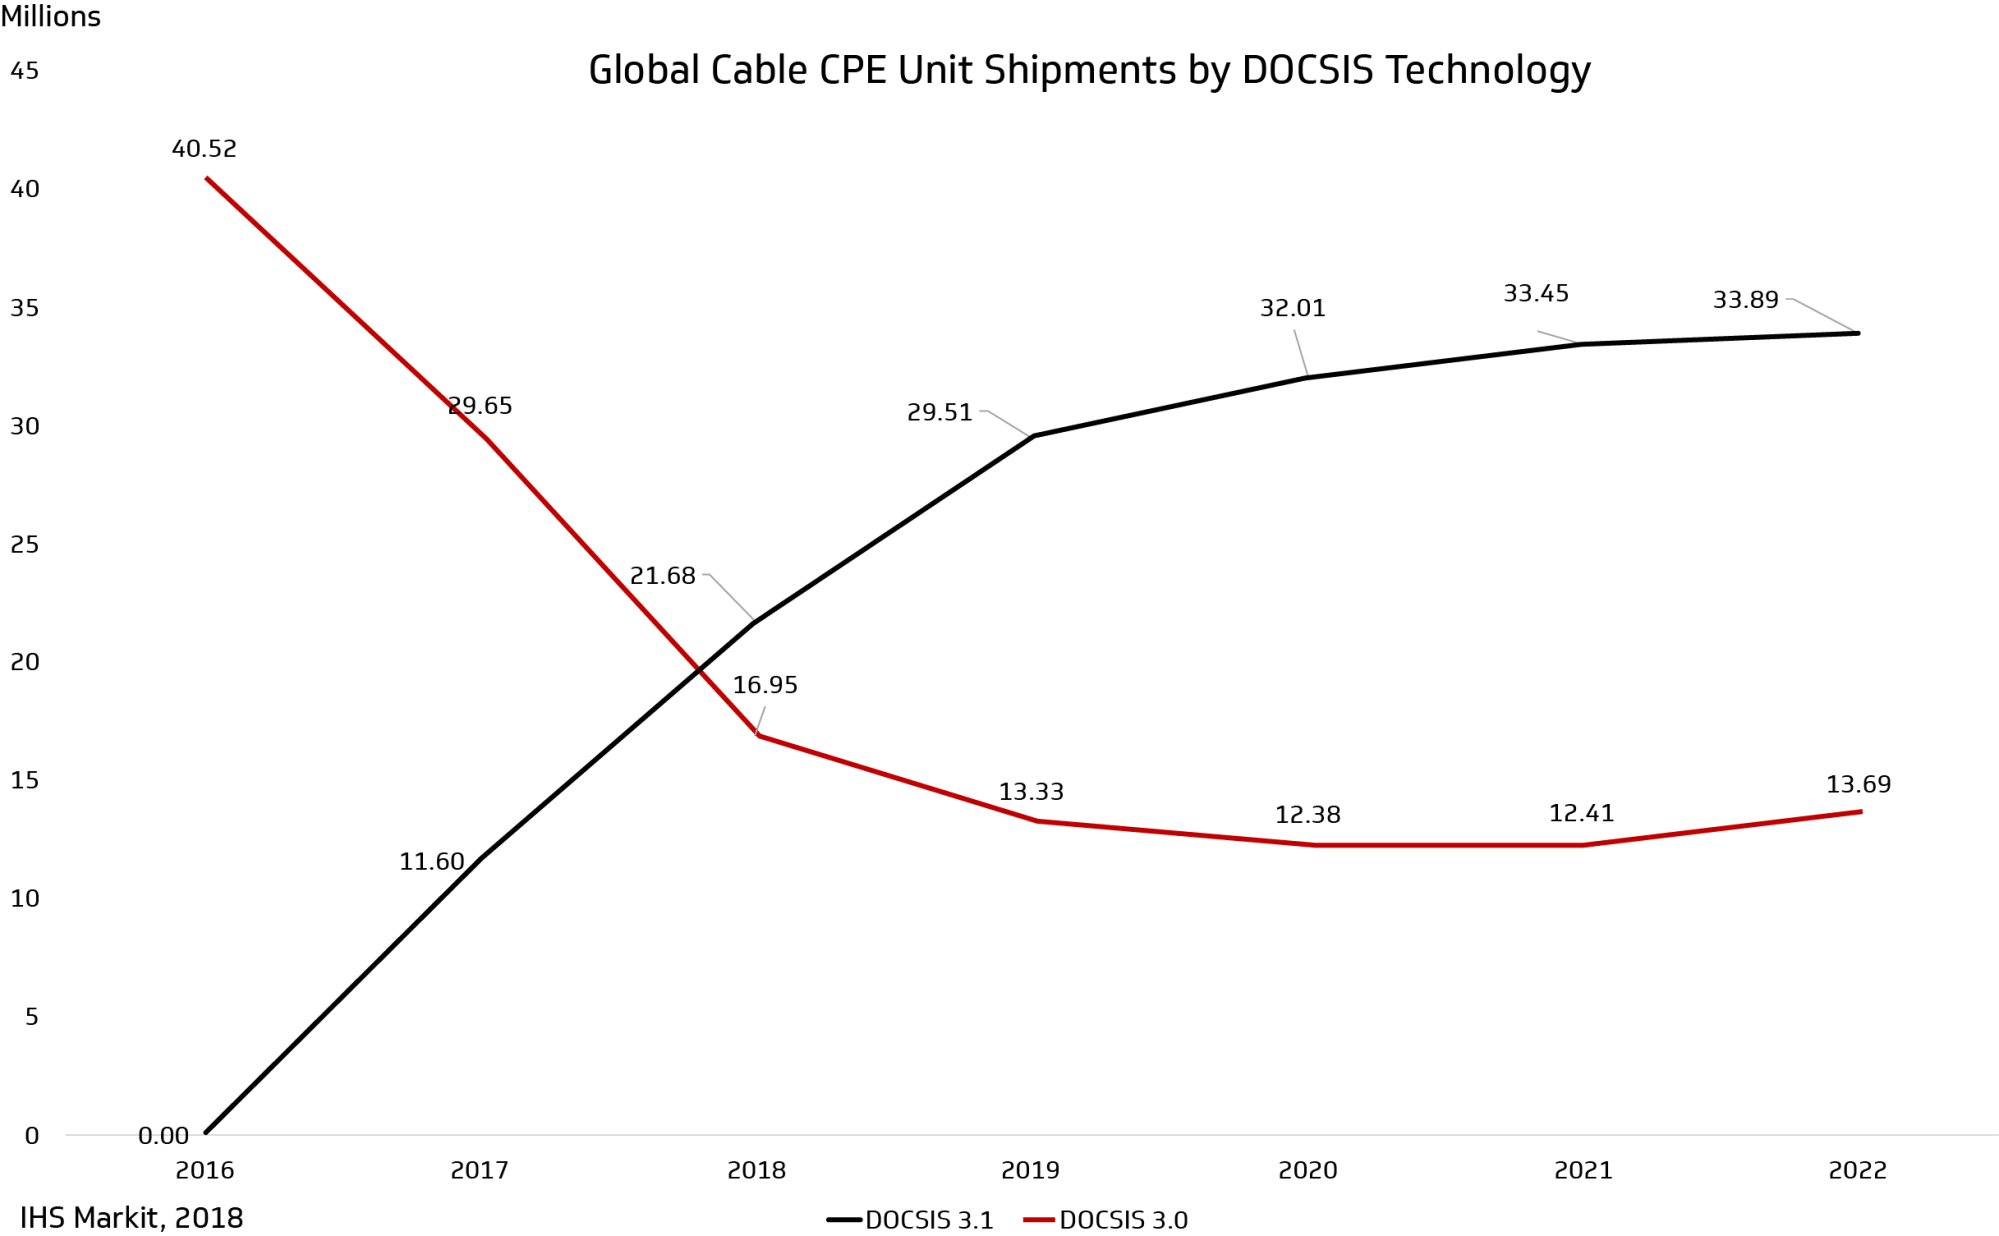 hight resolution of figure 3 global cable customer premise equipment cpe units shipped and projected through